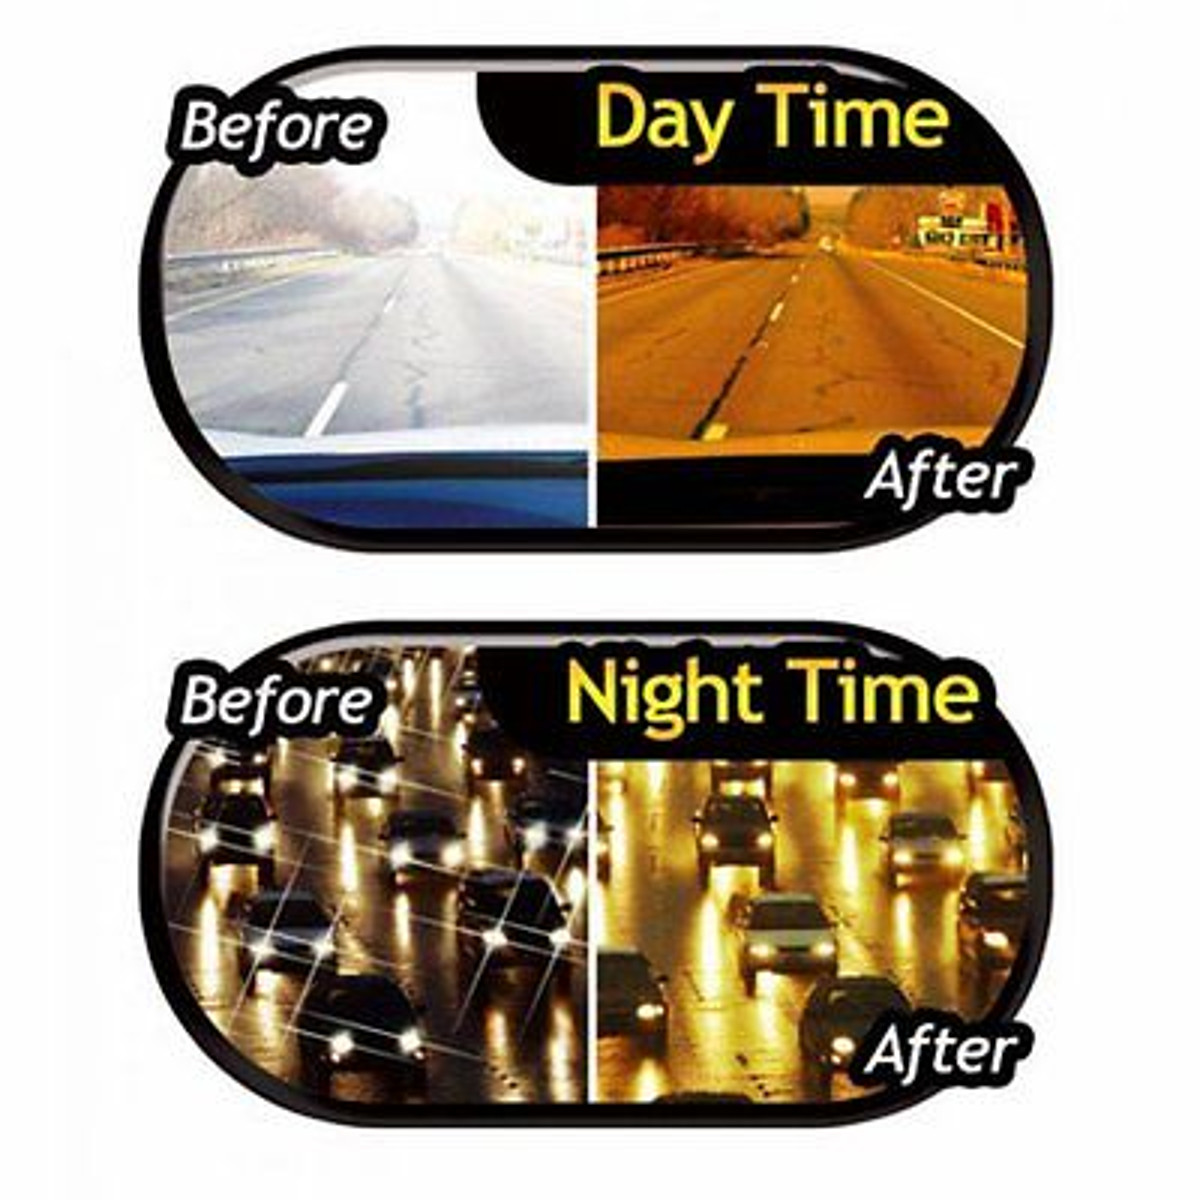 Unisex Night Driving Glasses Polarized Anti Glare Night Vision Driver Safety Sunglasses